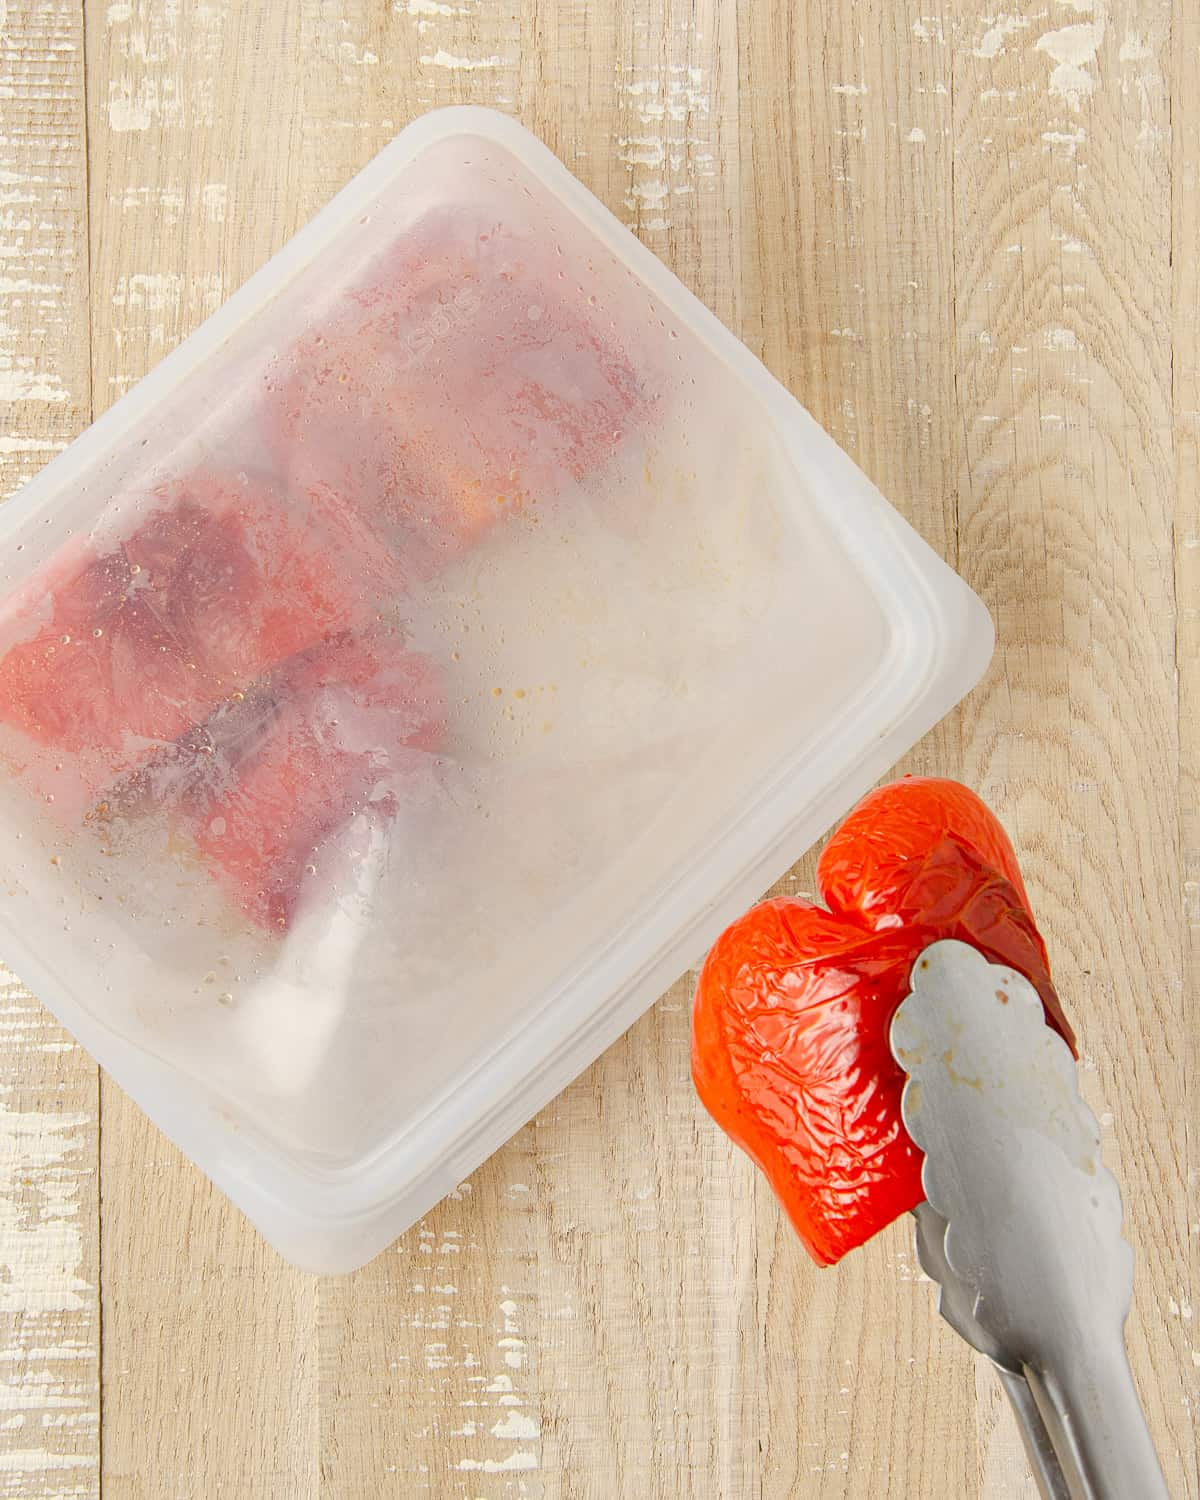 Placing a roasted red pepper in a bag to steam.